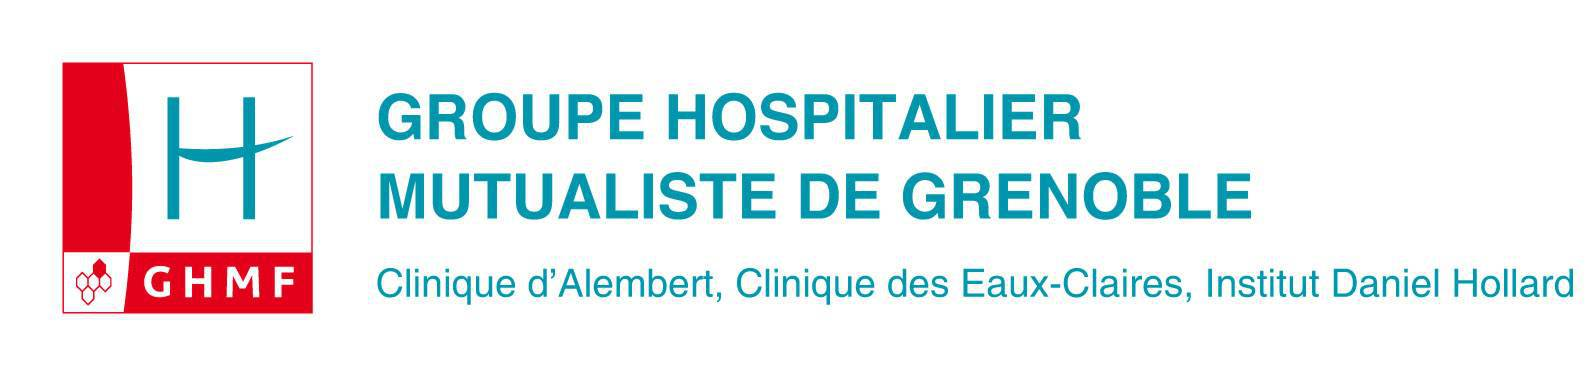 offres d u0026 39 emploi ghm de grenoble  grenoble   u2013 f u00e9d u00e9ration